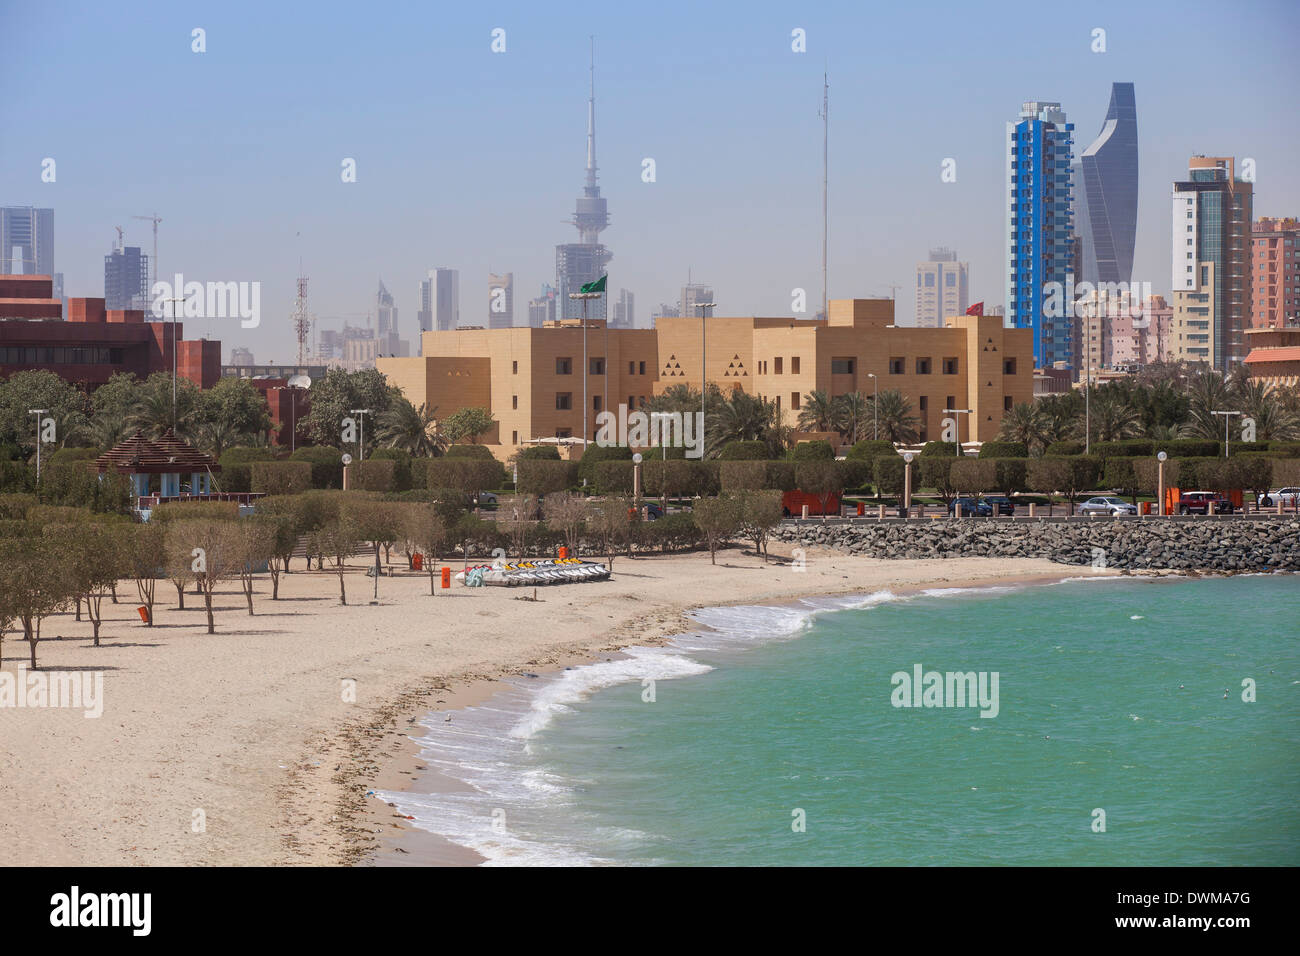 Arabian Gulf and city skyline, Salmiya, Kuwait City, Kuwait, Middle East - Stock Image